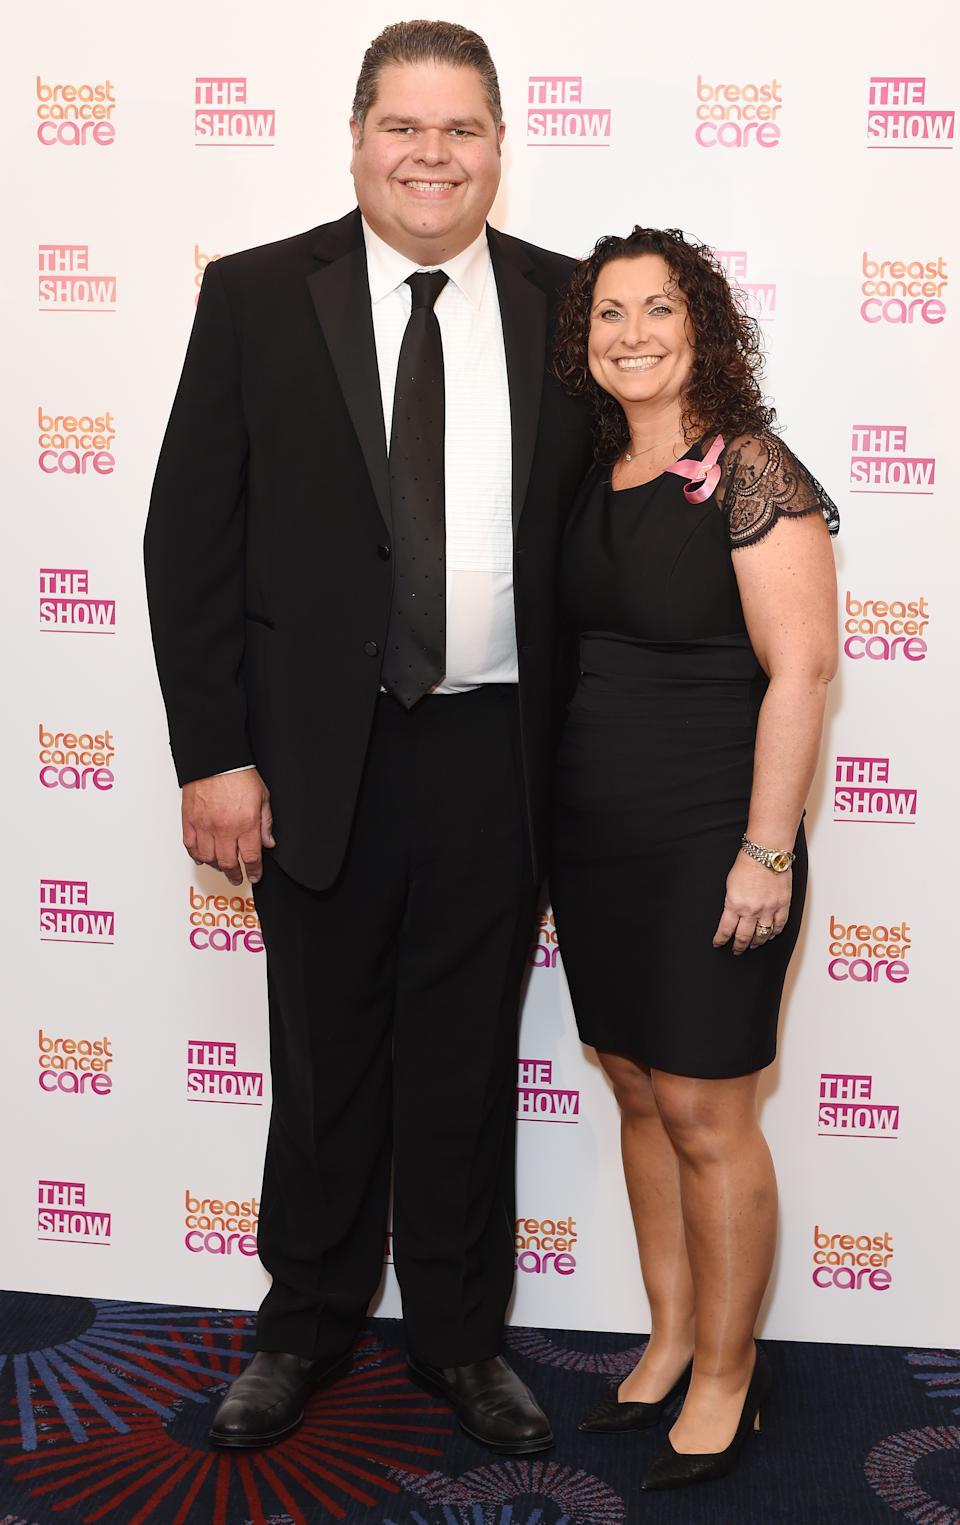 Jonathan and Nikki Tapper from GoggleBox attend Breast Cancer Care's London fashion show at Grosvenor House Hotel to launch Breast Cancer Awareness Month, on October 7, 2015 in London, England.  (Photo by Tabatha Fireman/Getty Images for Breast Cancer Care)